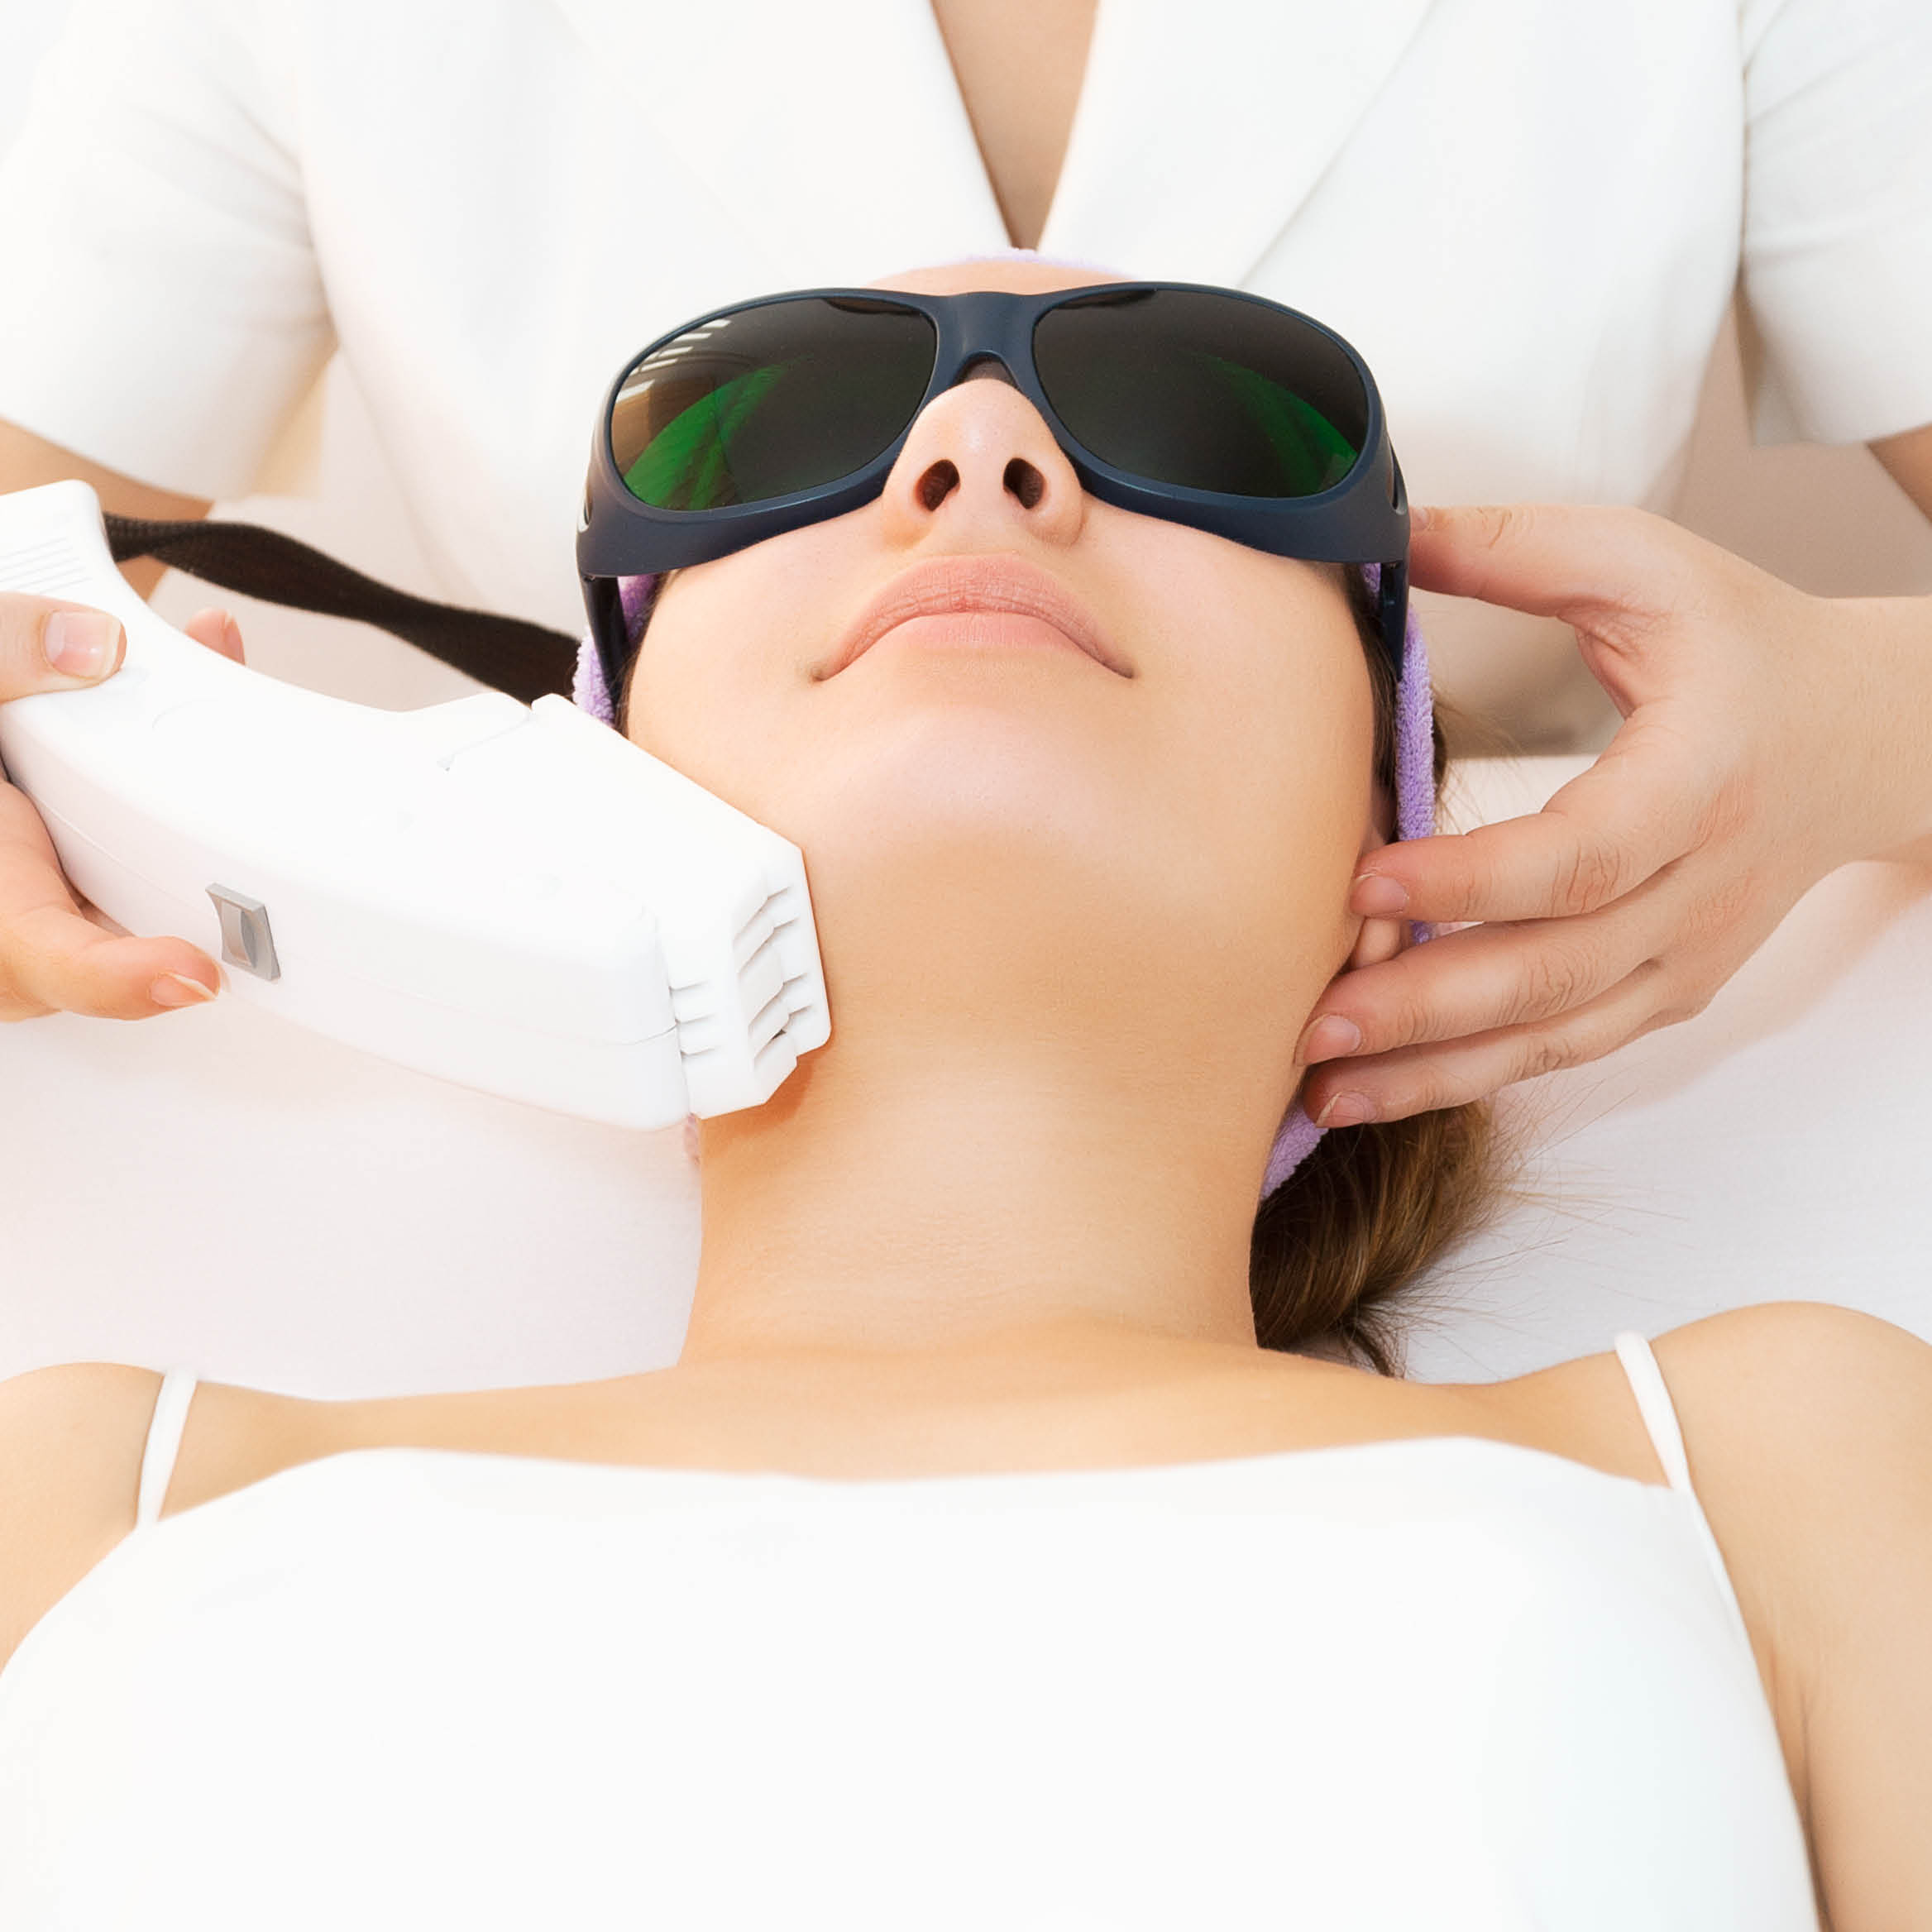 Young woman with laser therapy in progress